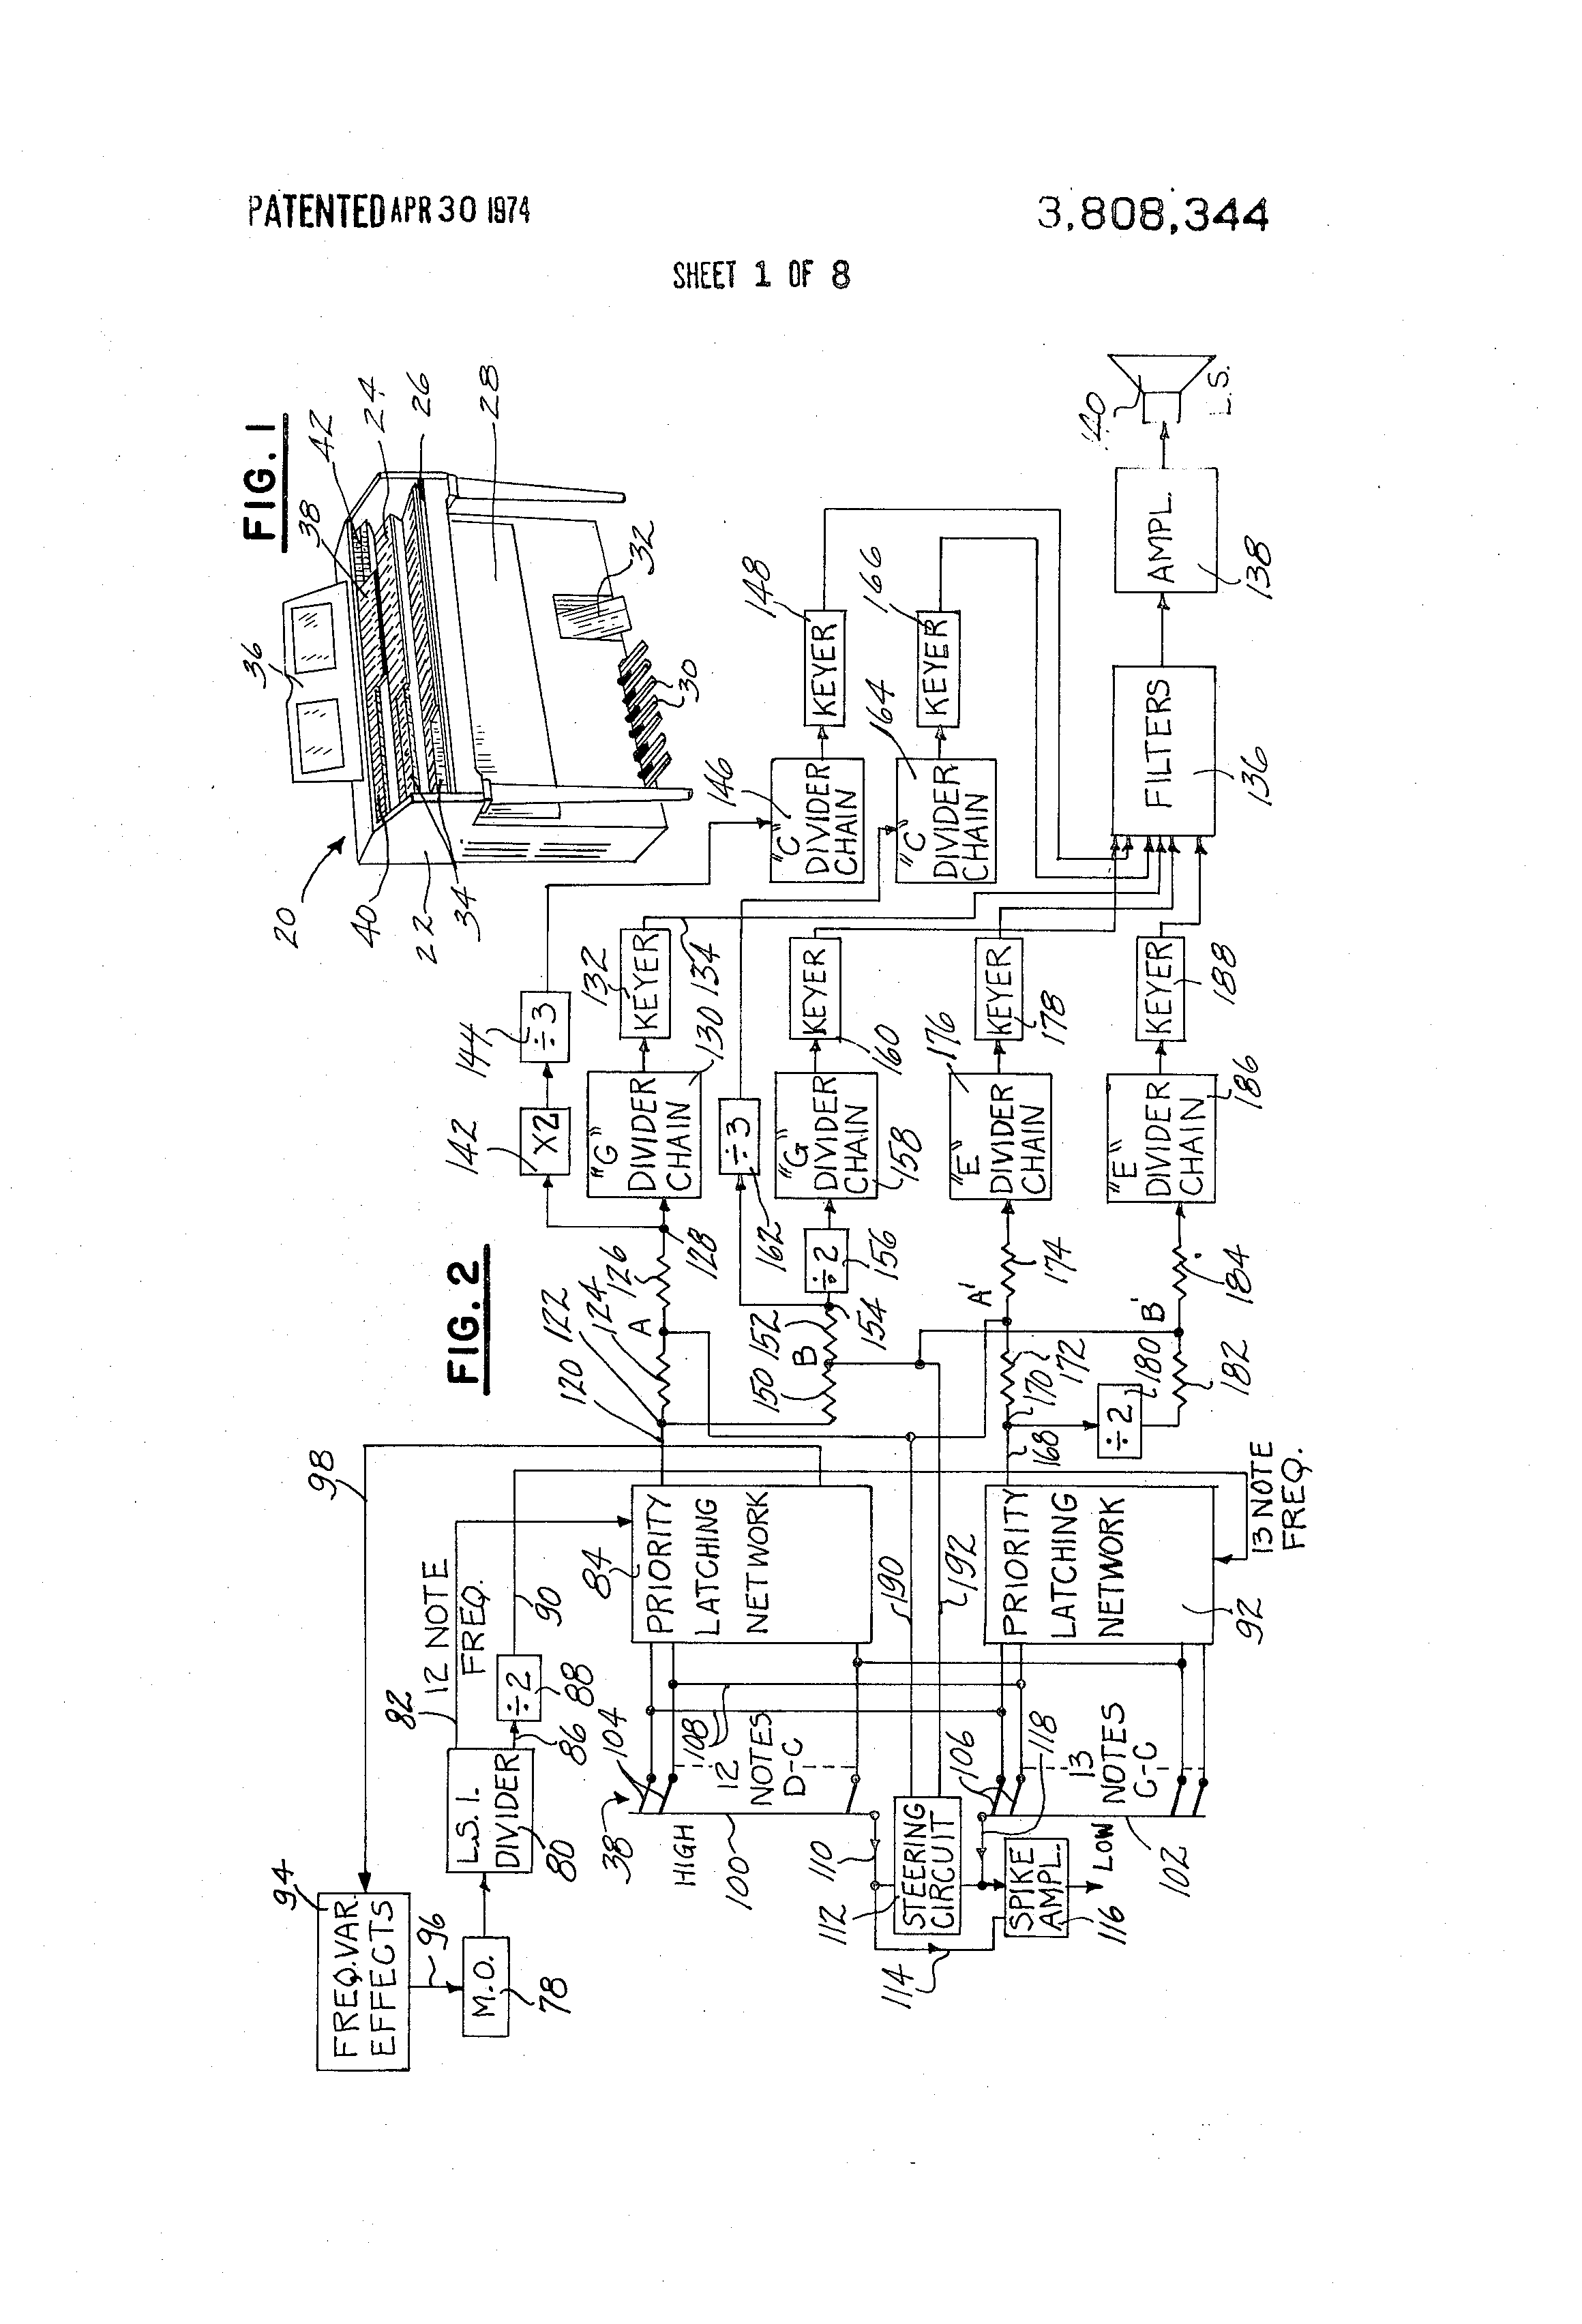 Chevy Llv Wiring Diagram Com